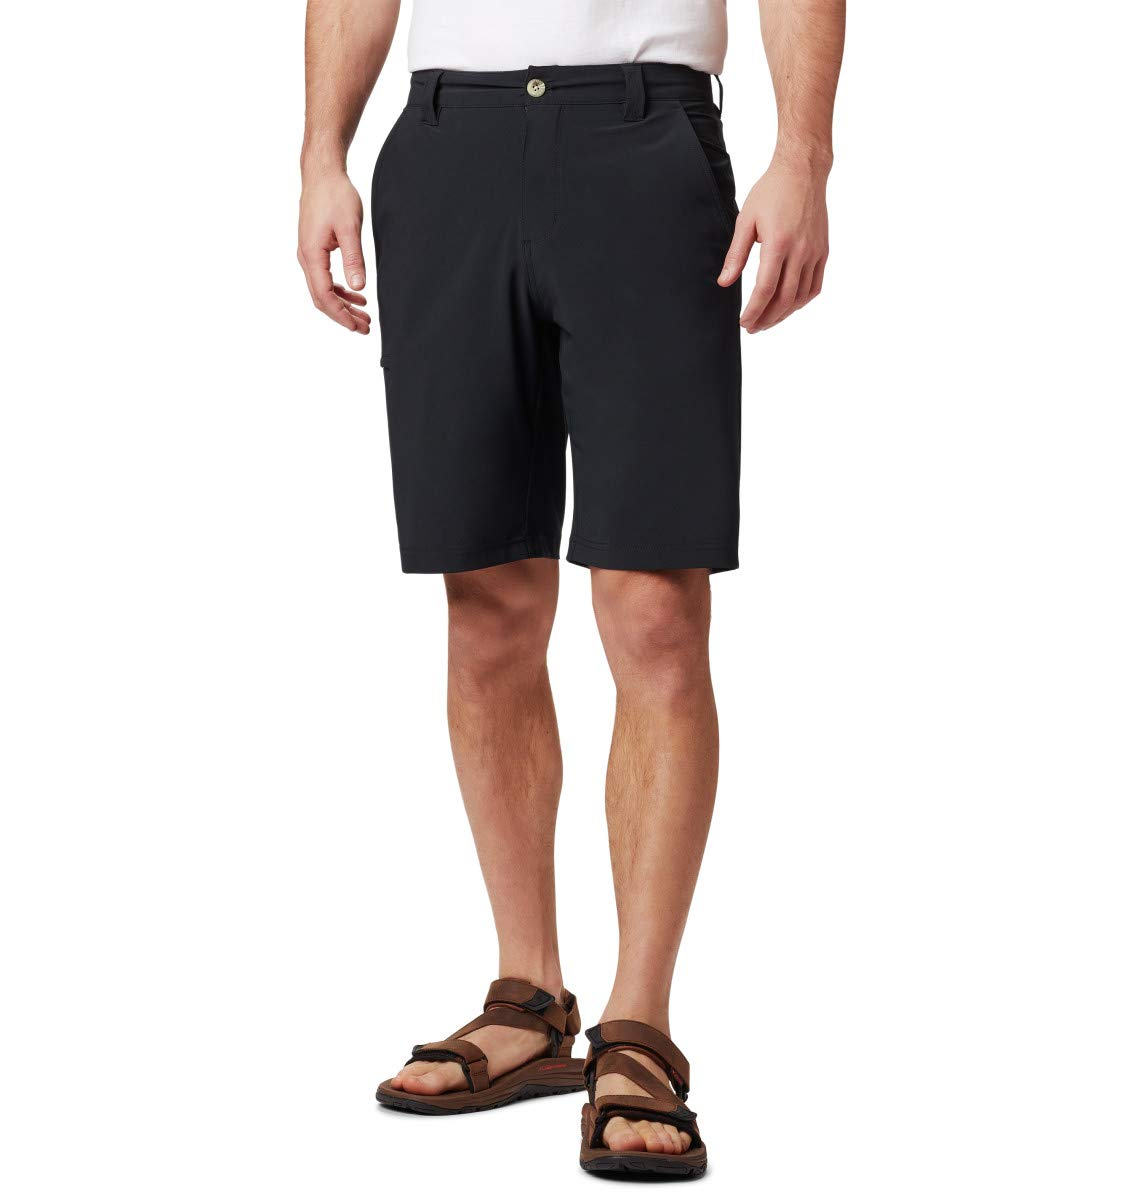 Columbia Sportswear Grander Marlin II Offshore Shorts, Black, 36x10 by Columbia